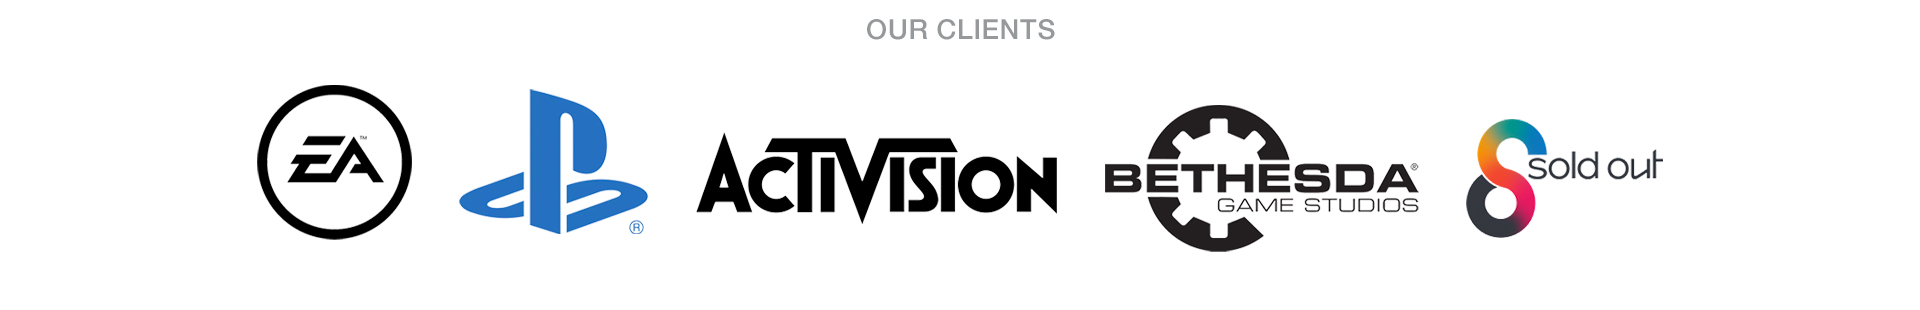 client-logo-video-games